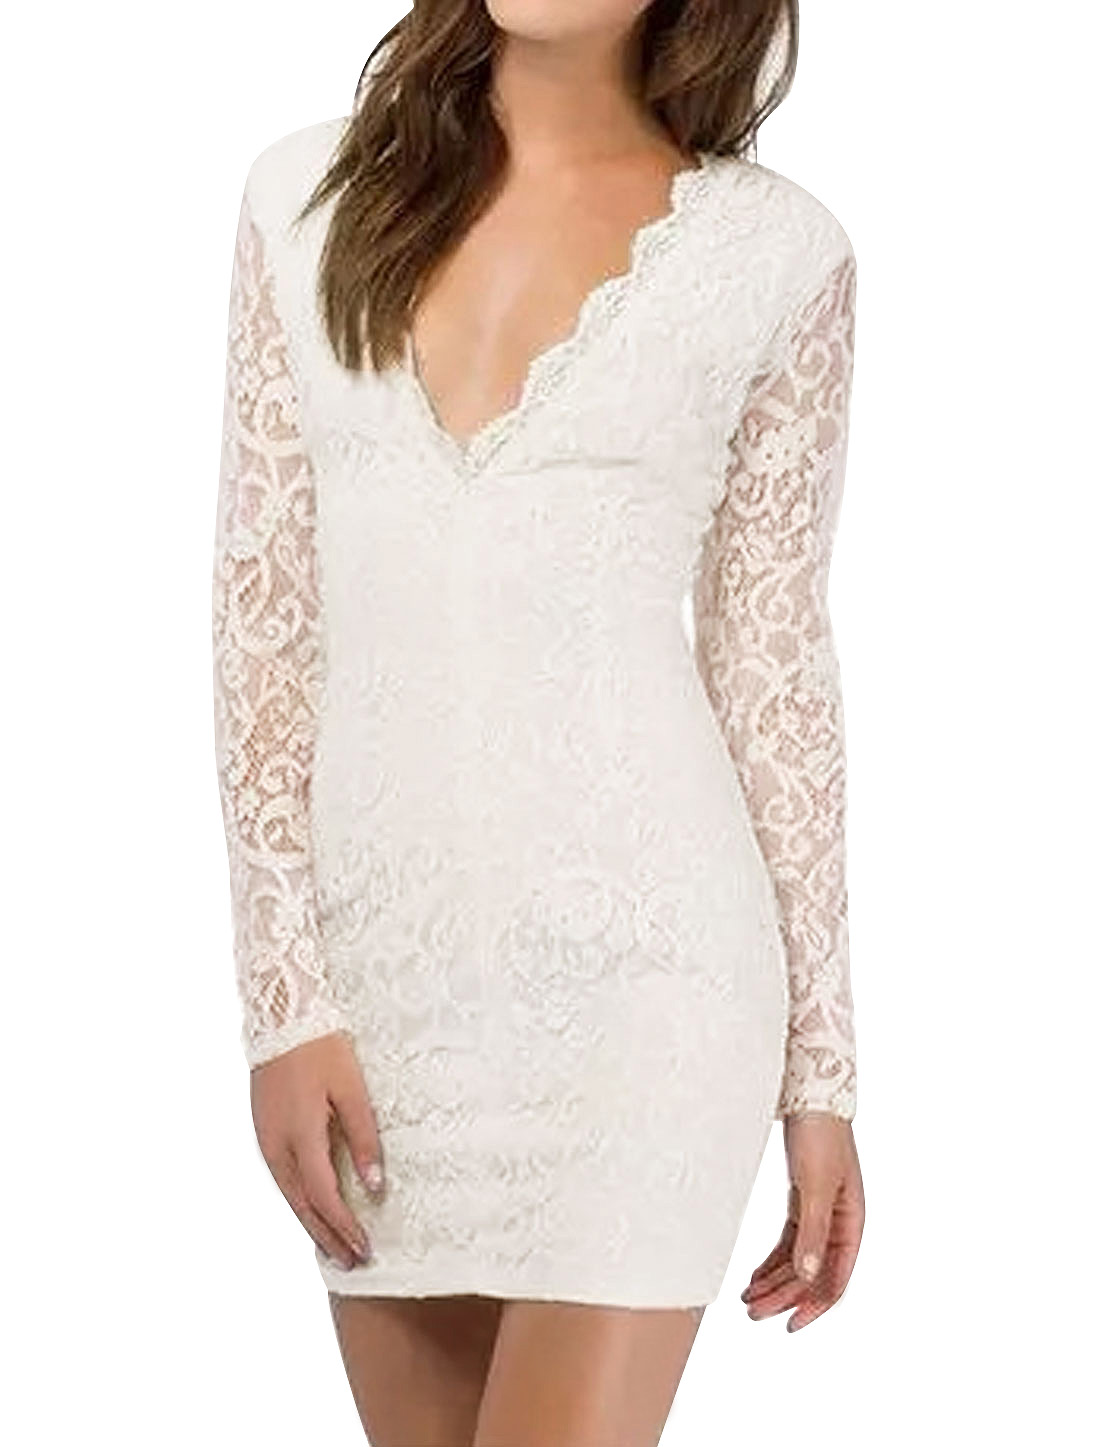 Women Scalloped V Neck Long Sleeves Slim Fit Lace Dress White M